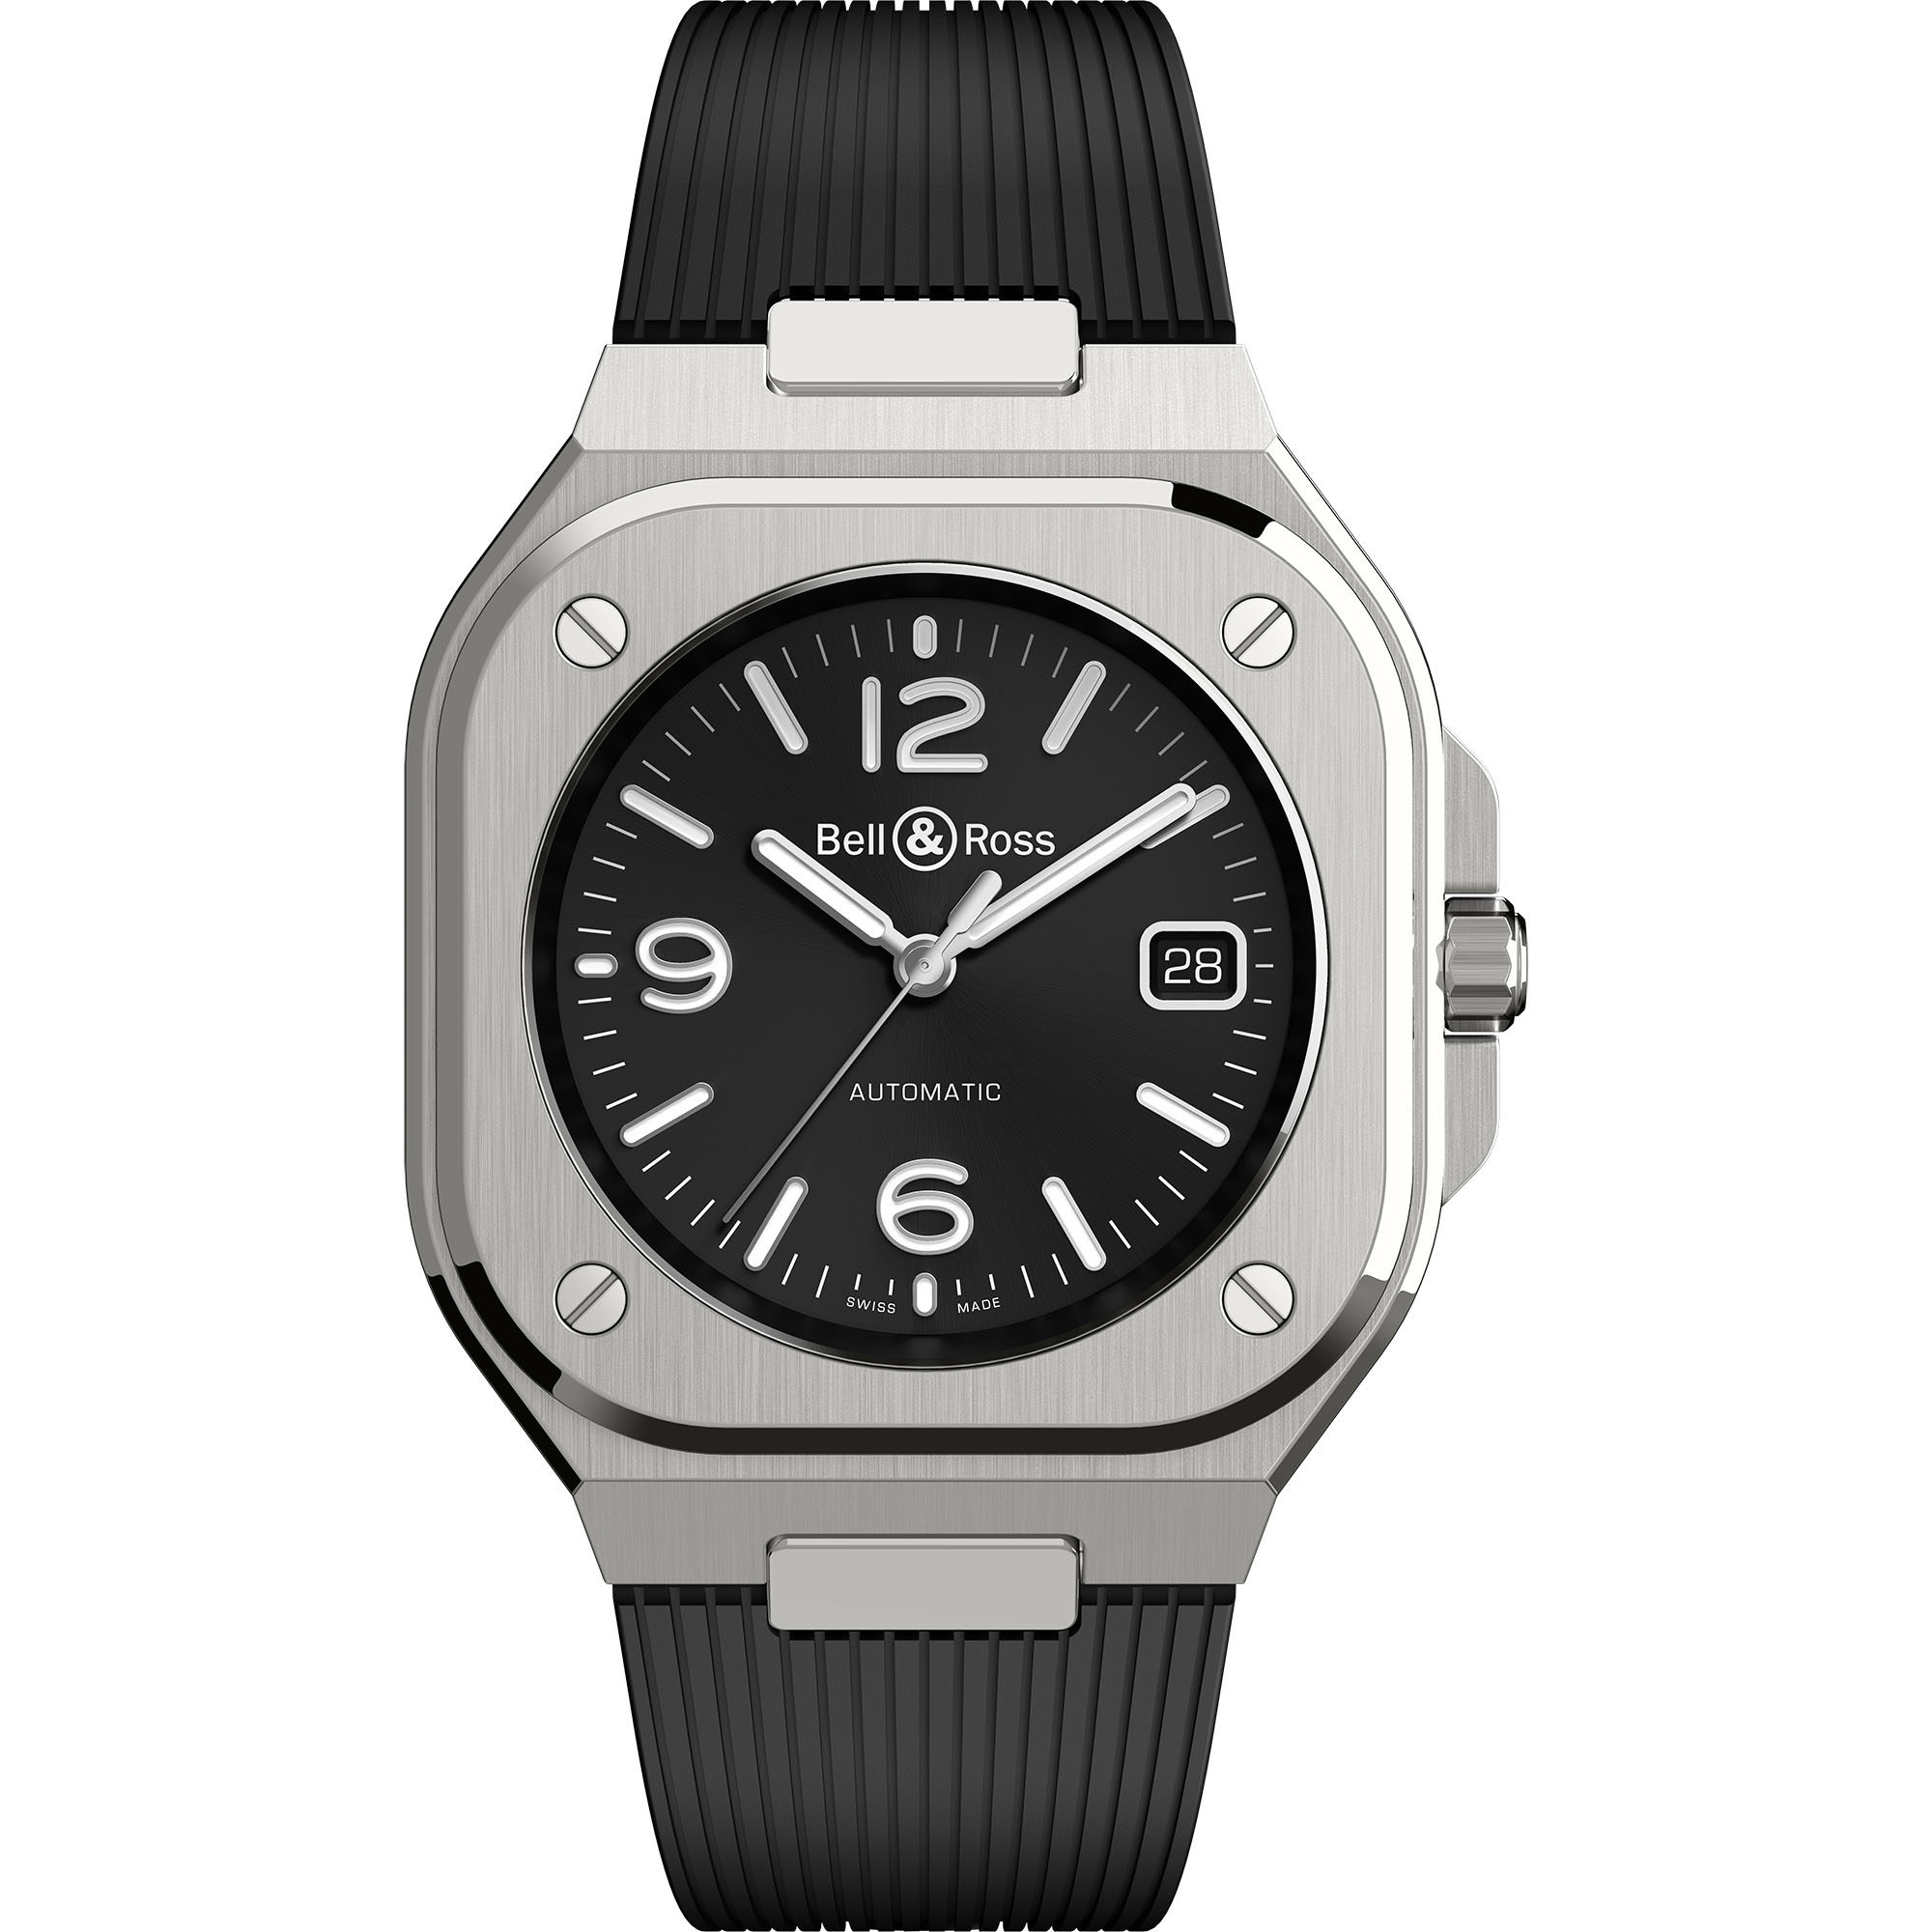 Bell & Ross BR 05 Black Steel BR05A-BL-ST/SRB watches for sale